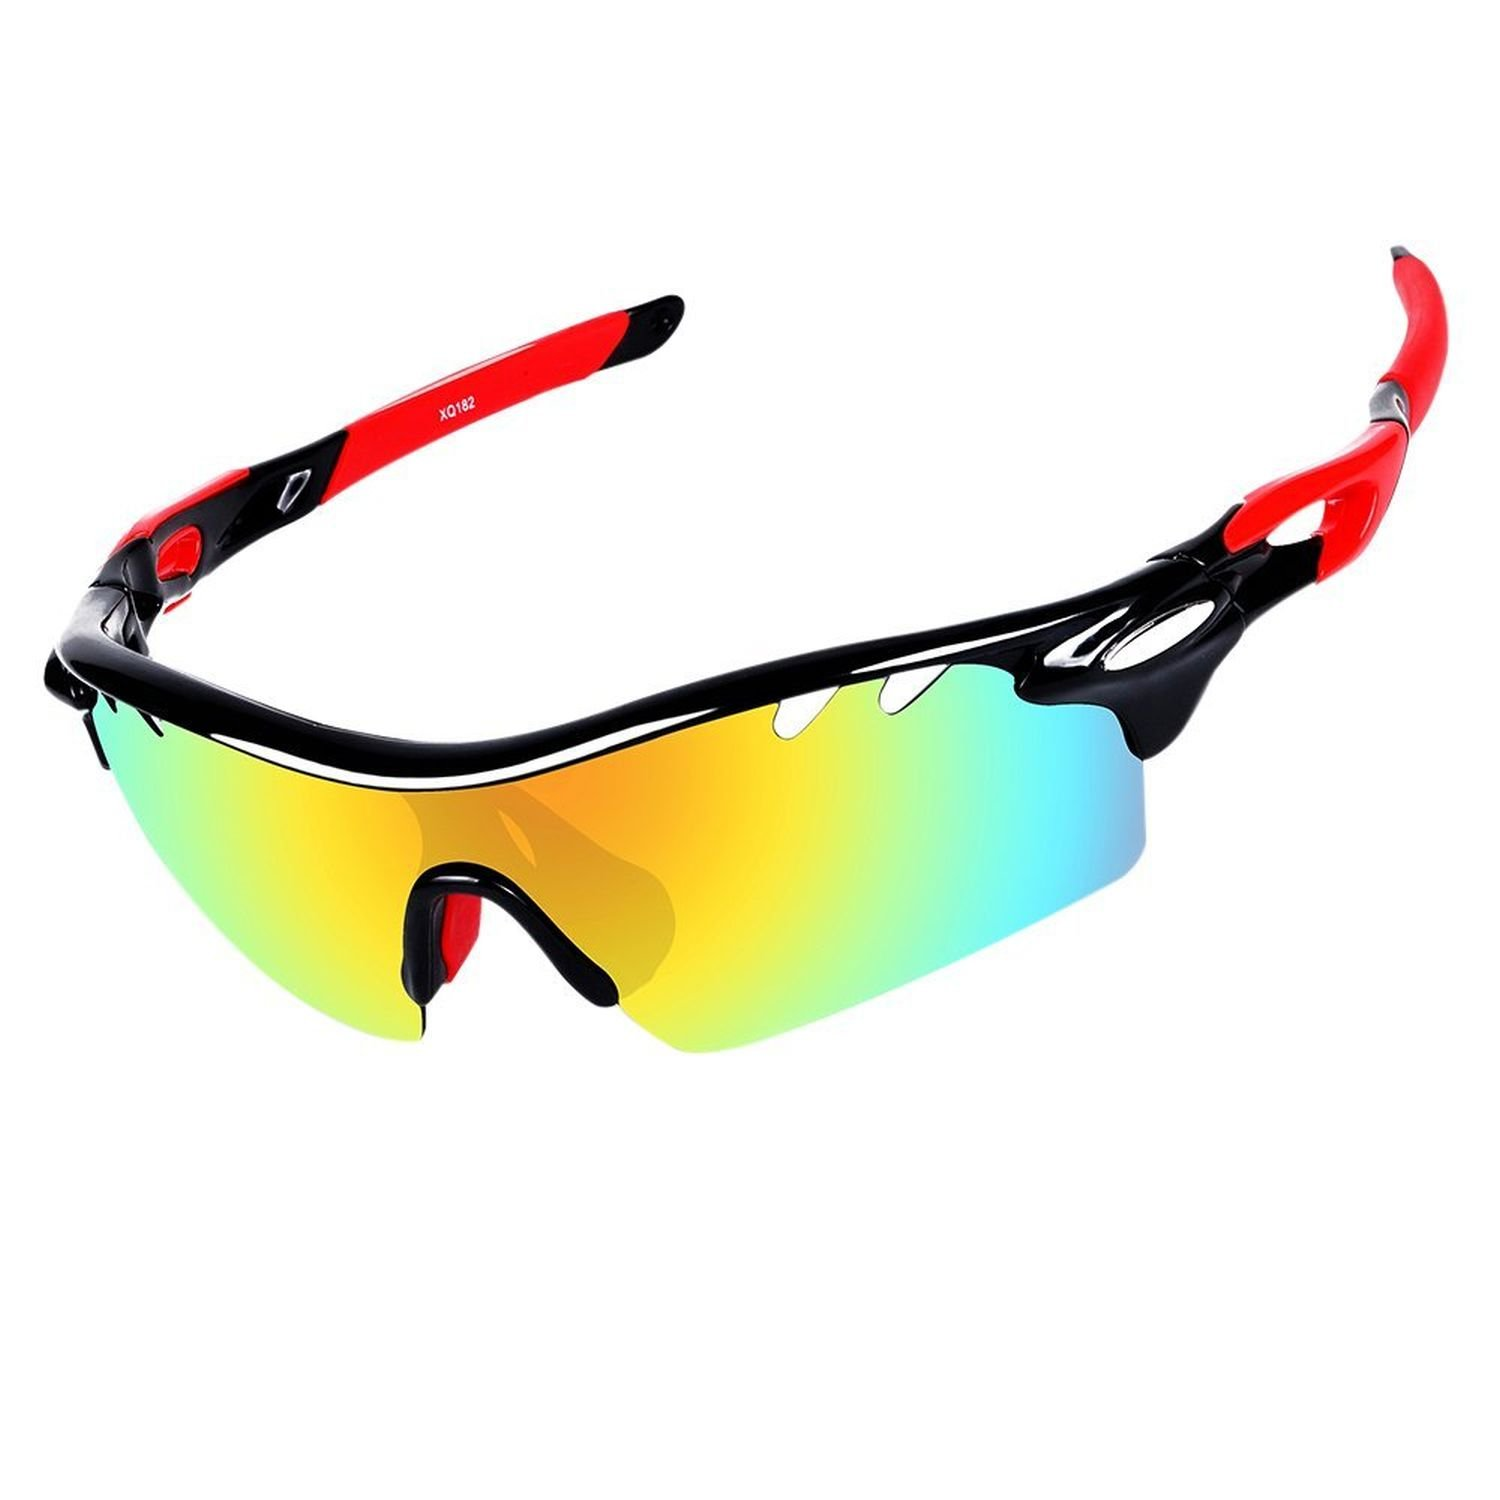 Polarized Sports Sun Glasses - UV-Resistant Sunglasses with Interchangeable Lenses, Protective Cycling Glasses and Unisex Polarization Glasses for Baseball, Running, Fishing, Improve Visibility